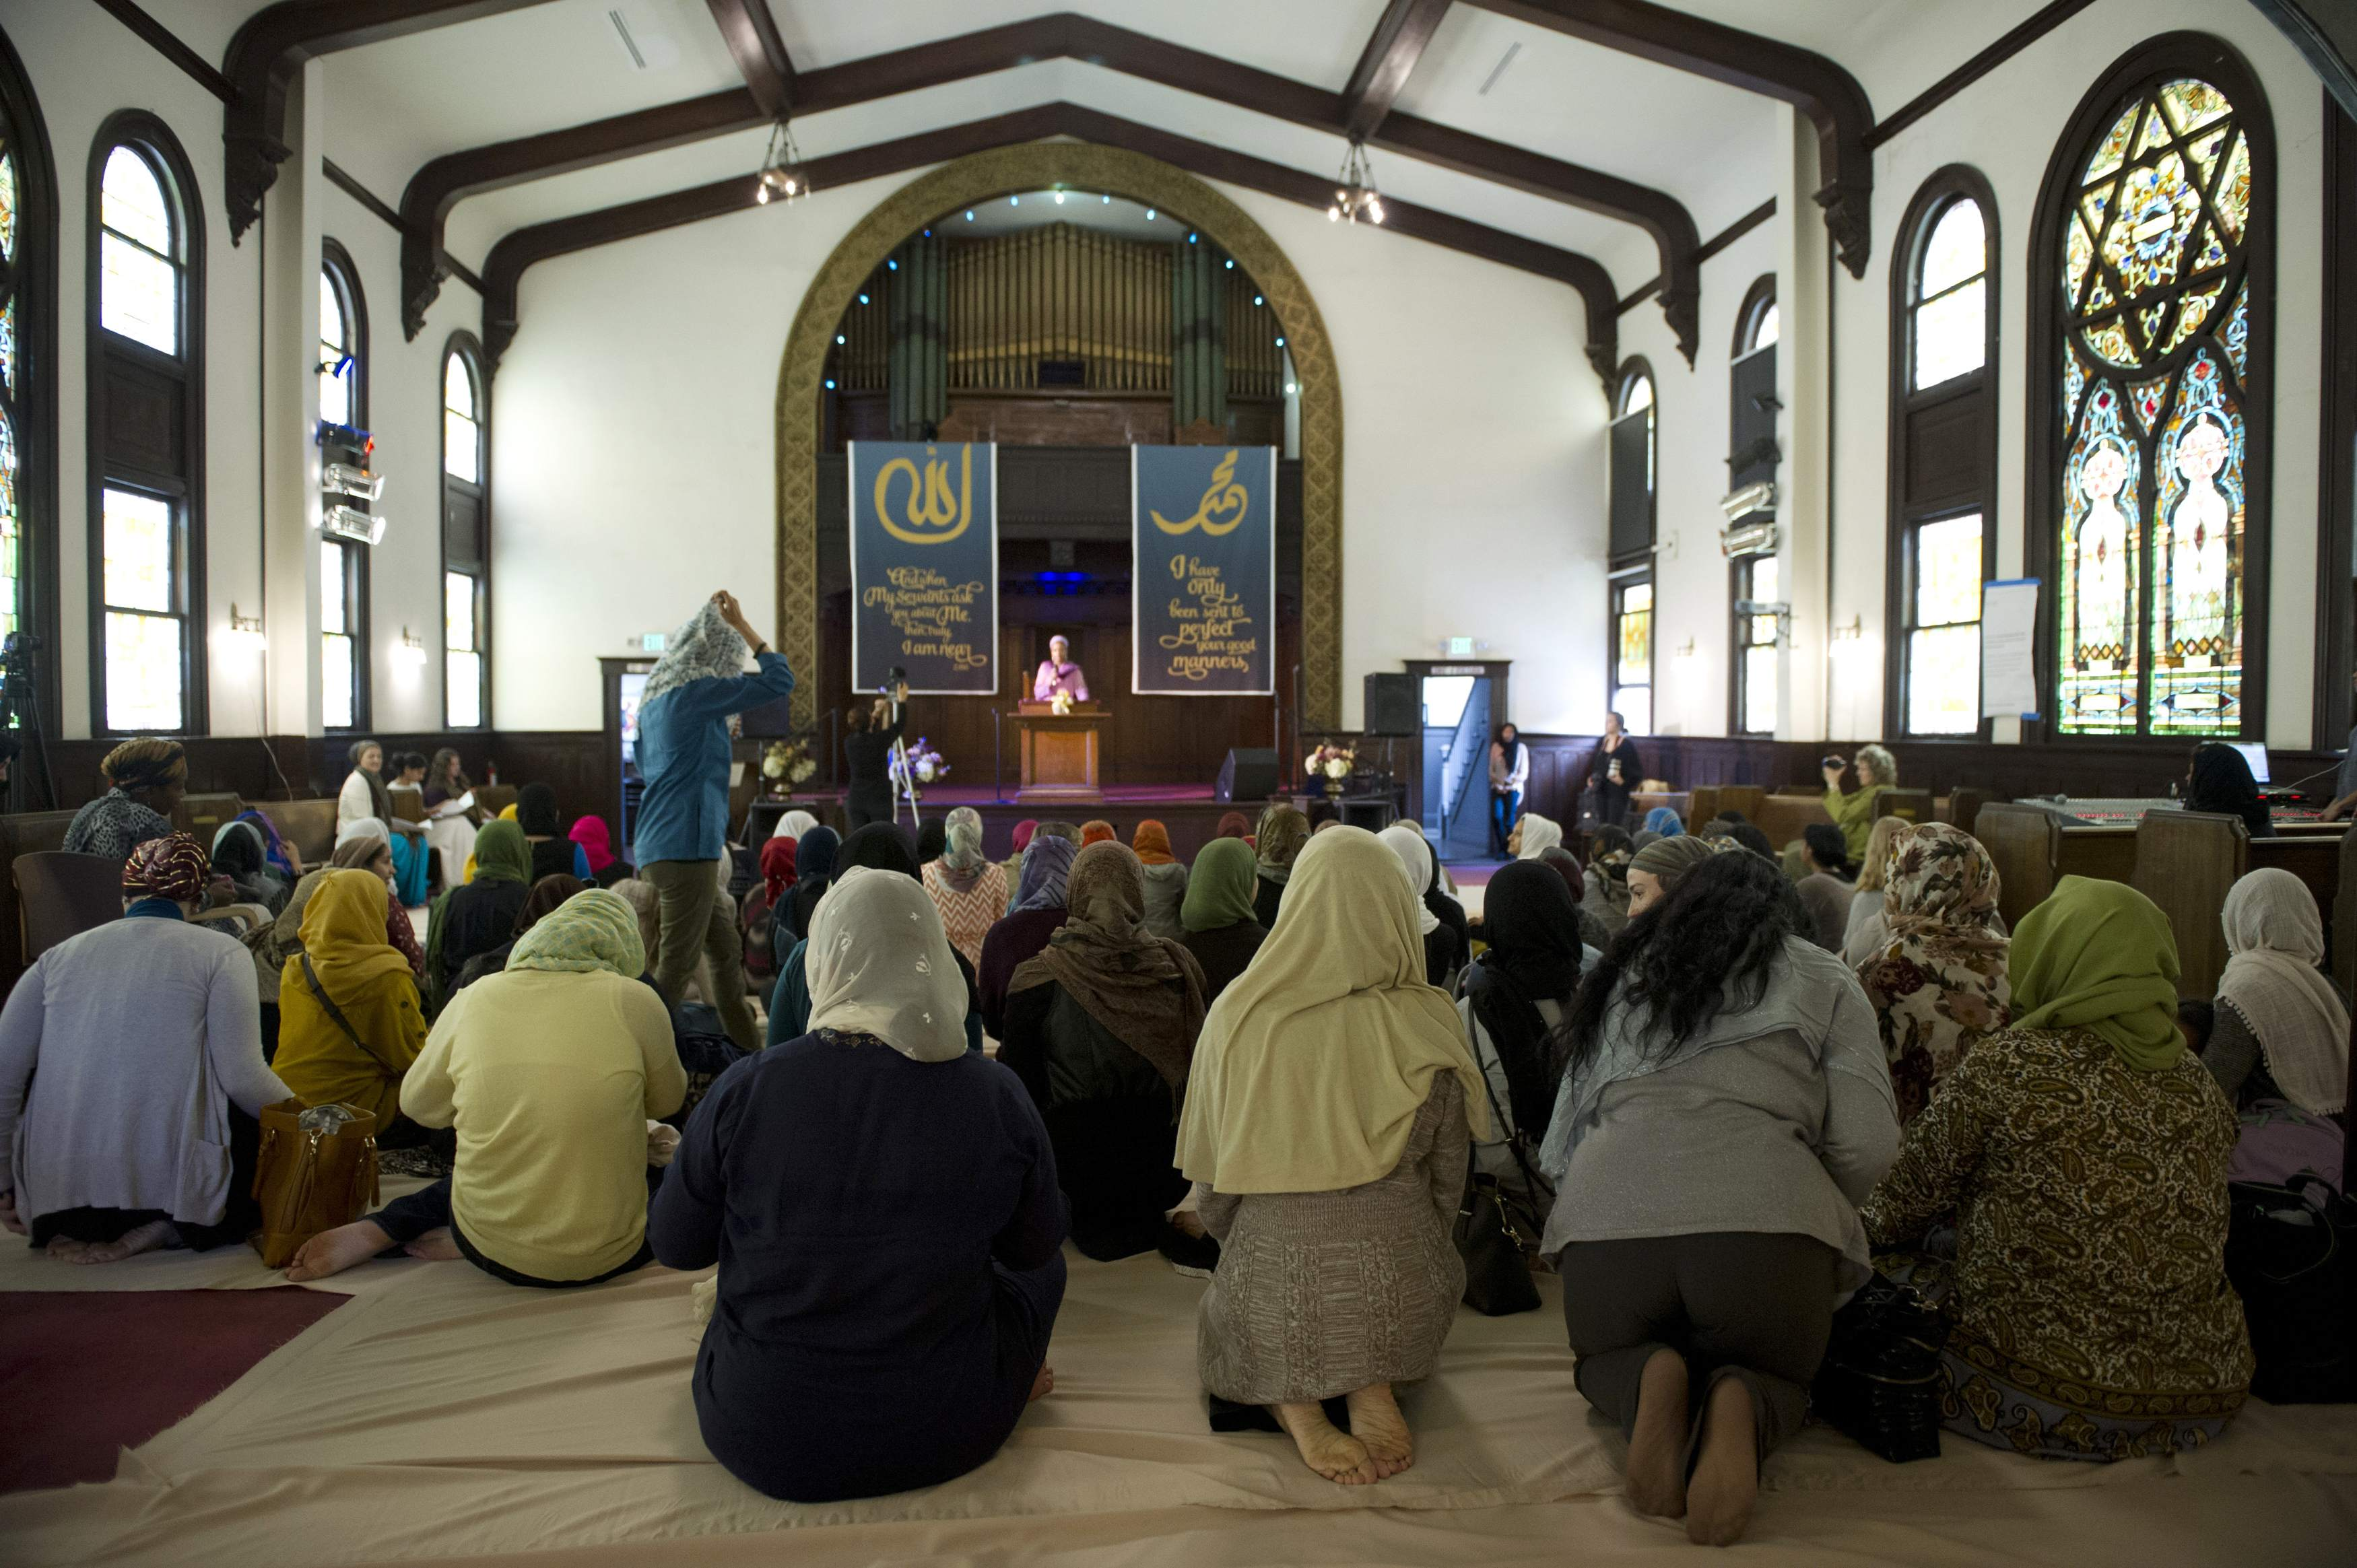 Muslim women kneel for the prayer service at the Women's Mosque of America in downtown Los Angeles, California.  Lori Shepler / Reuters